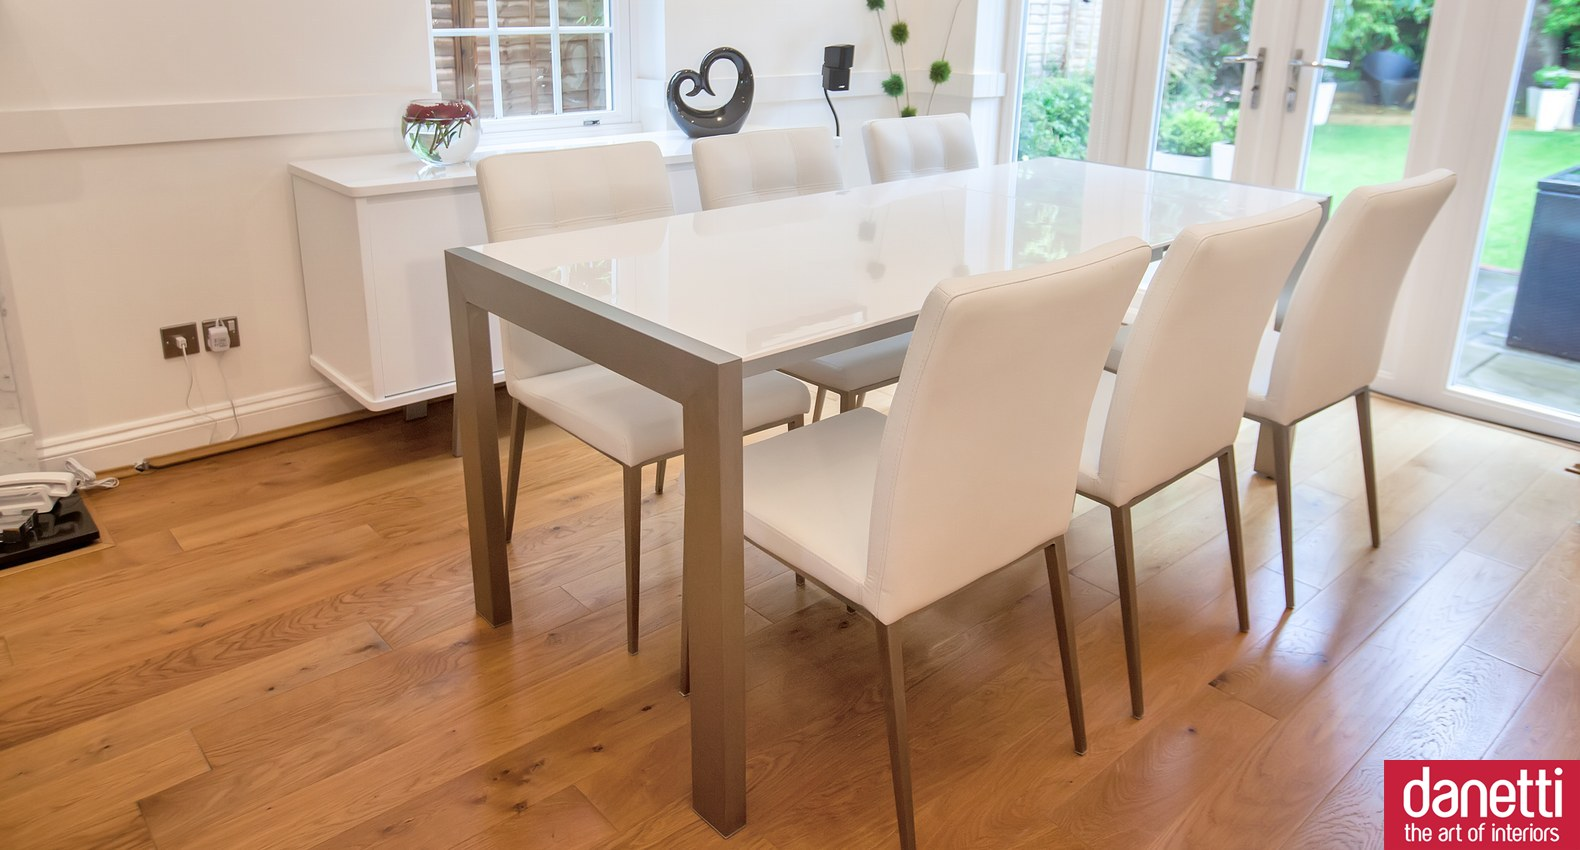 expandable dining table set in white on wooden floor for dining room decor ideas